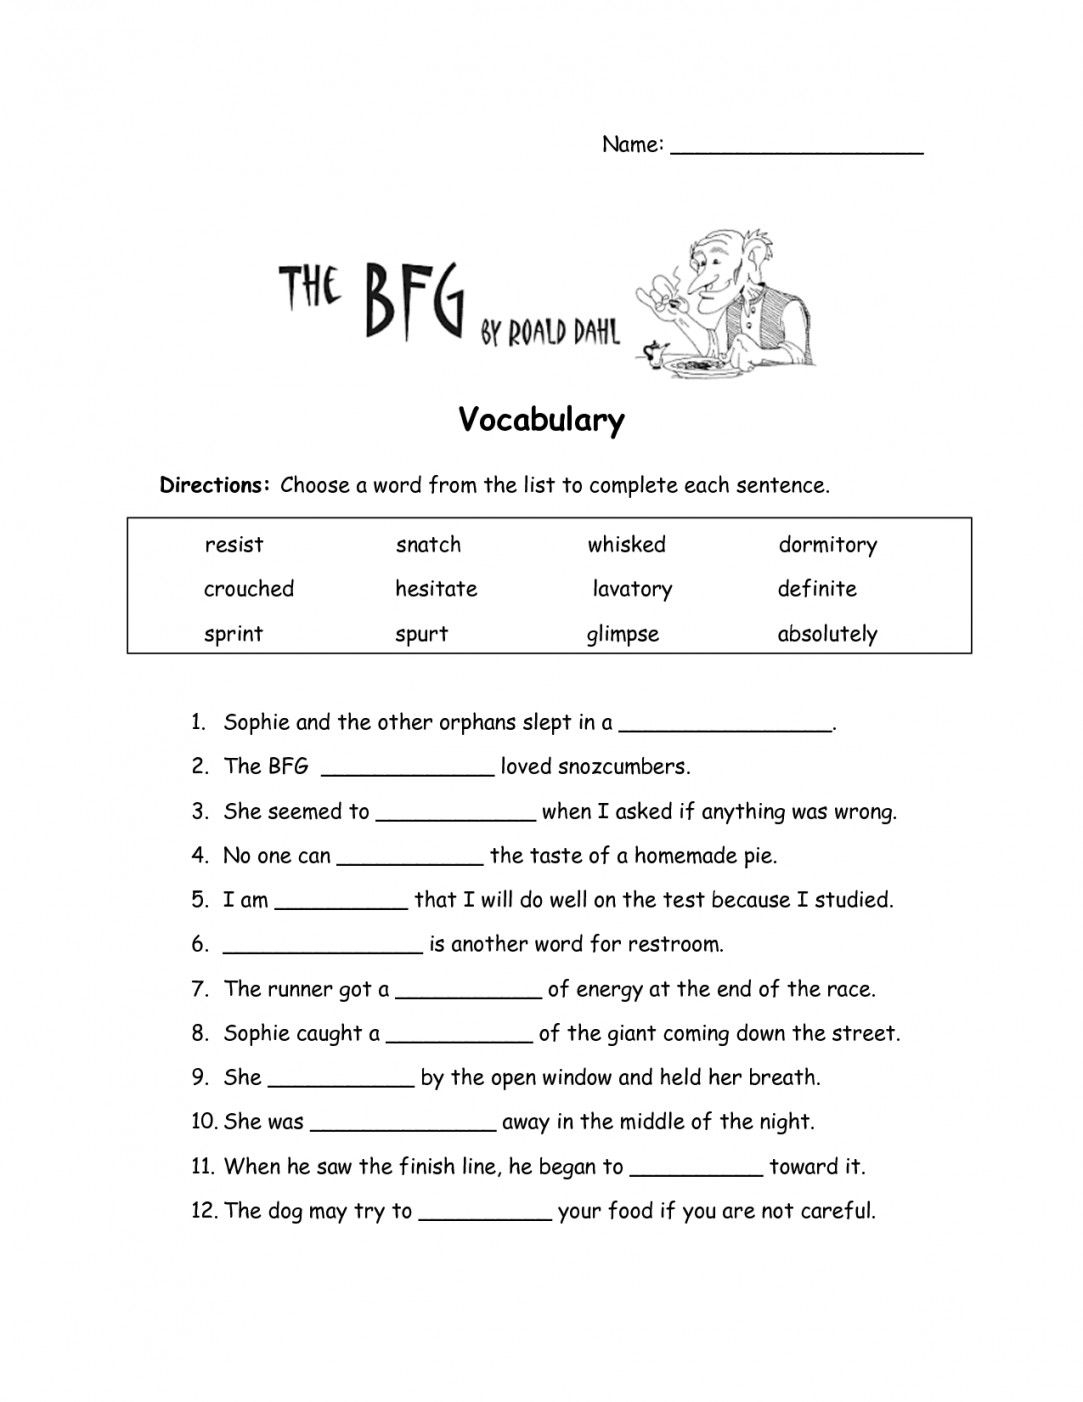 Free Printable Vocabulary Worksheets | Lostranquillos - Free Printable Portuguese Worksheets